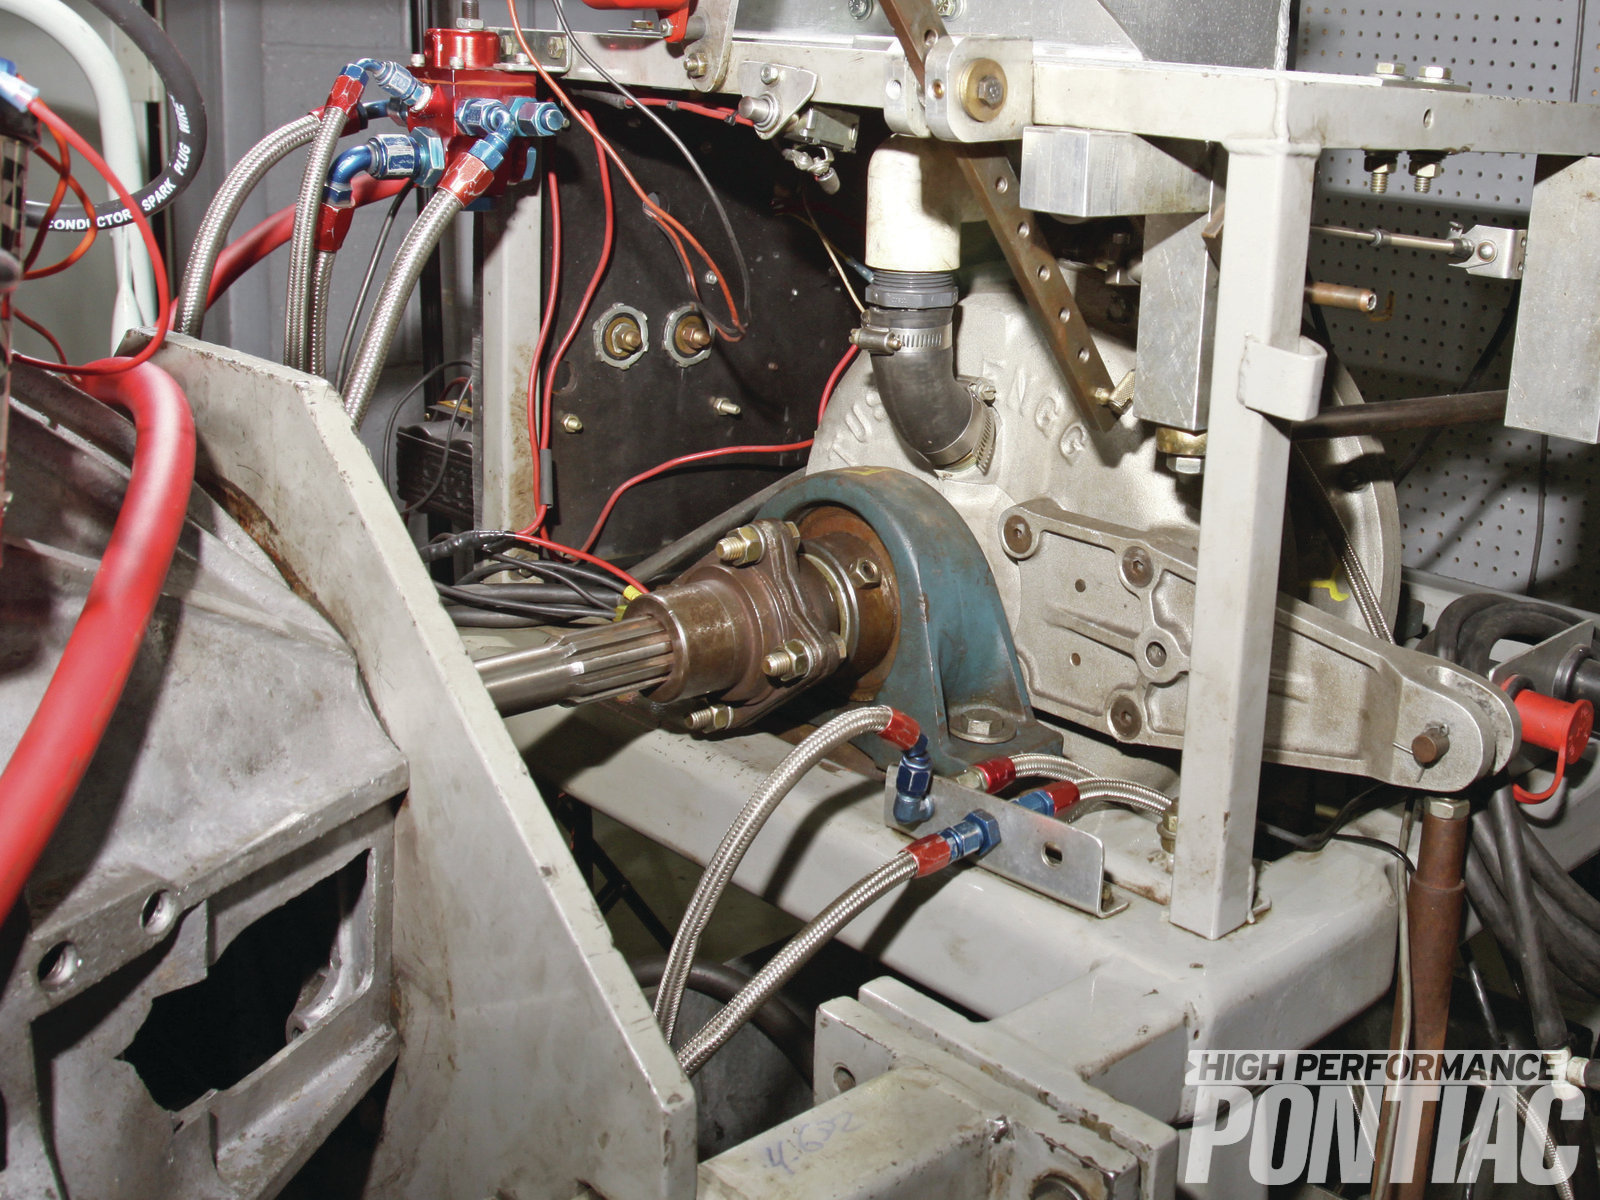 The water brake on a dyno has two impellers just as a torque converter does. The unit uses water to create a resistance, and the torque is measured by a strain gauge that in years past was mechanical but is now electronic.